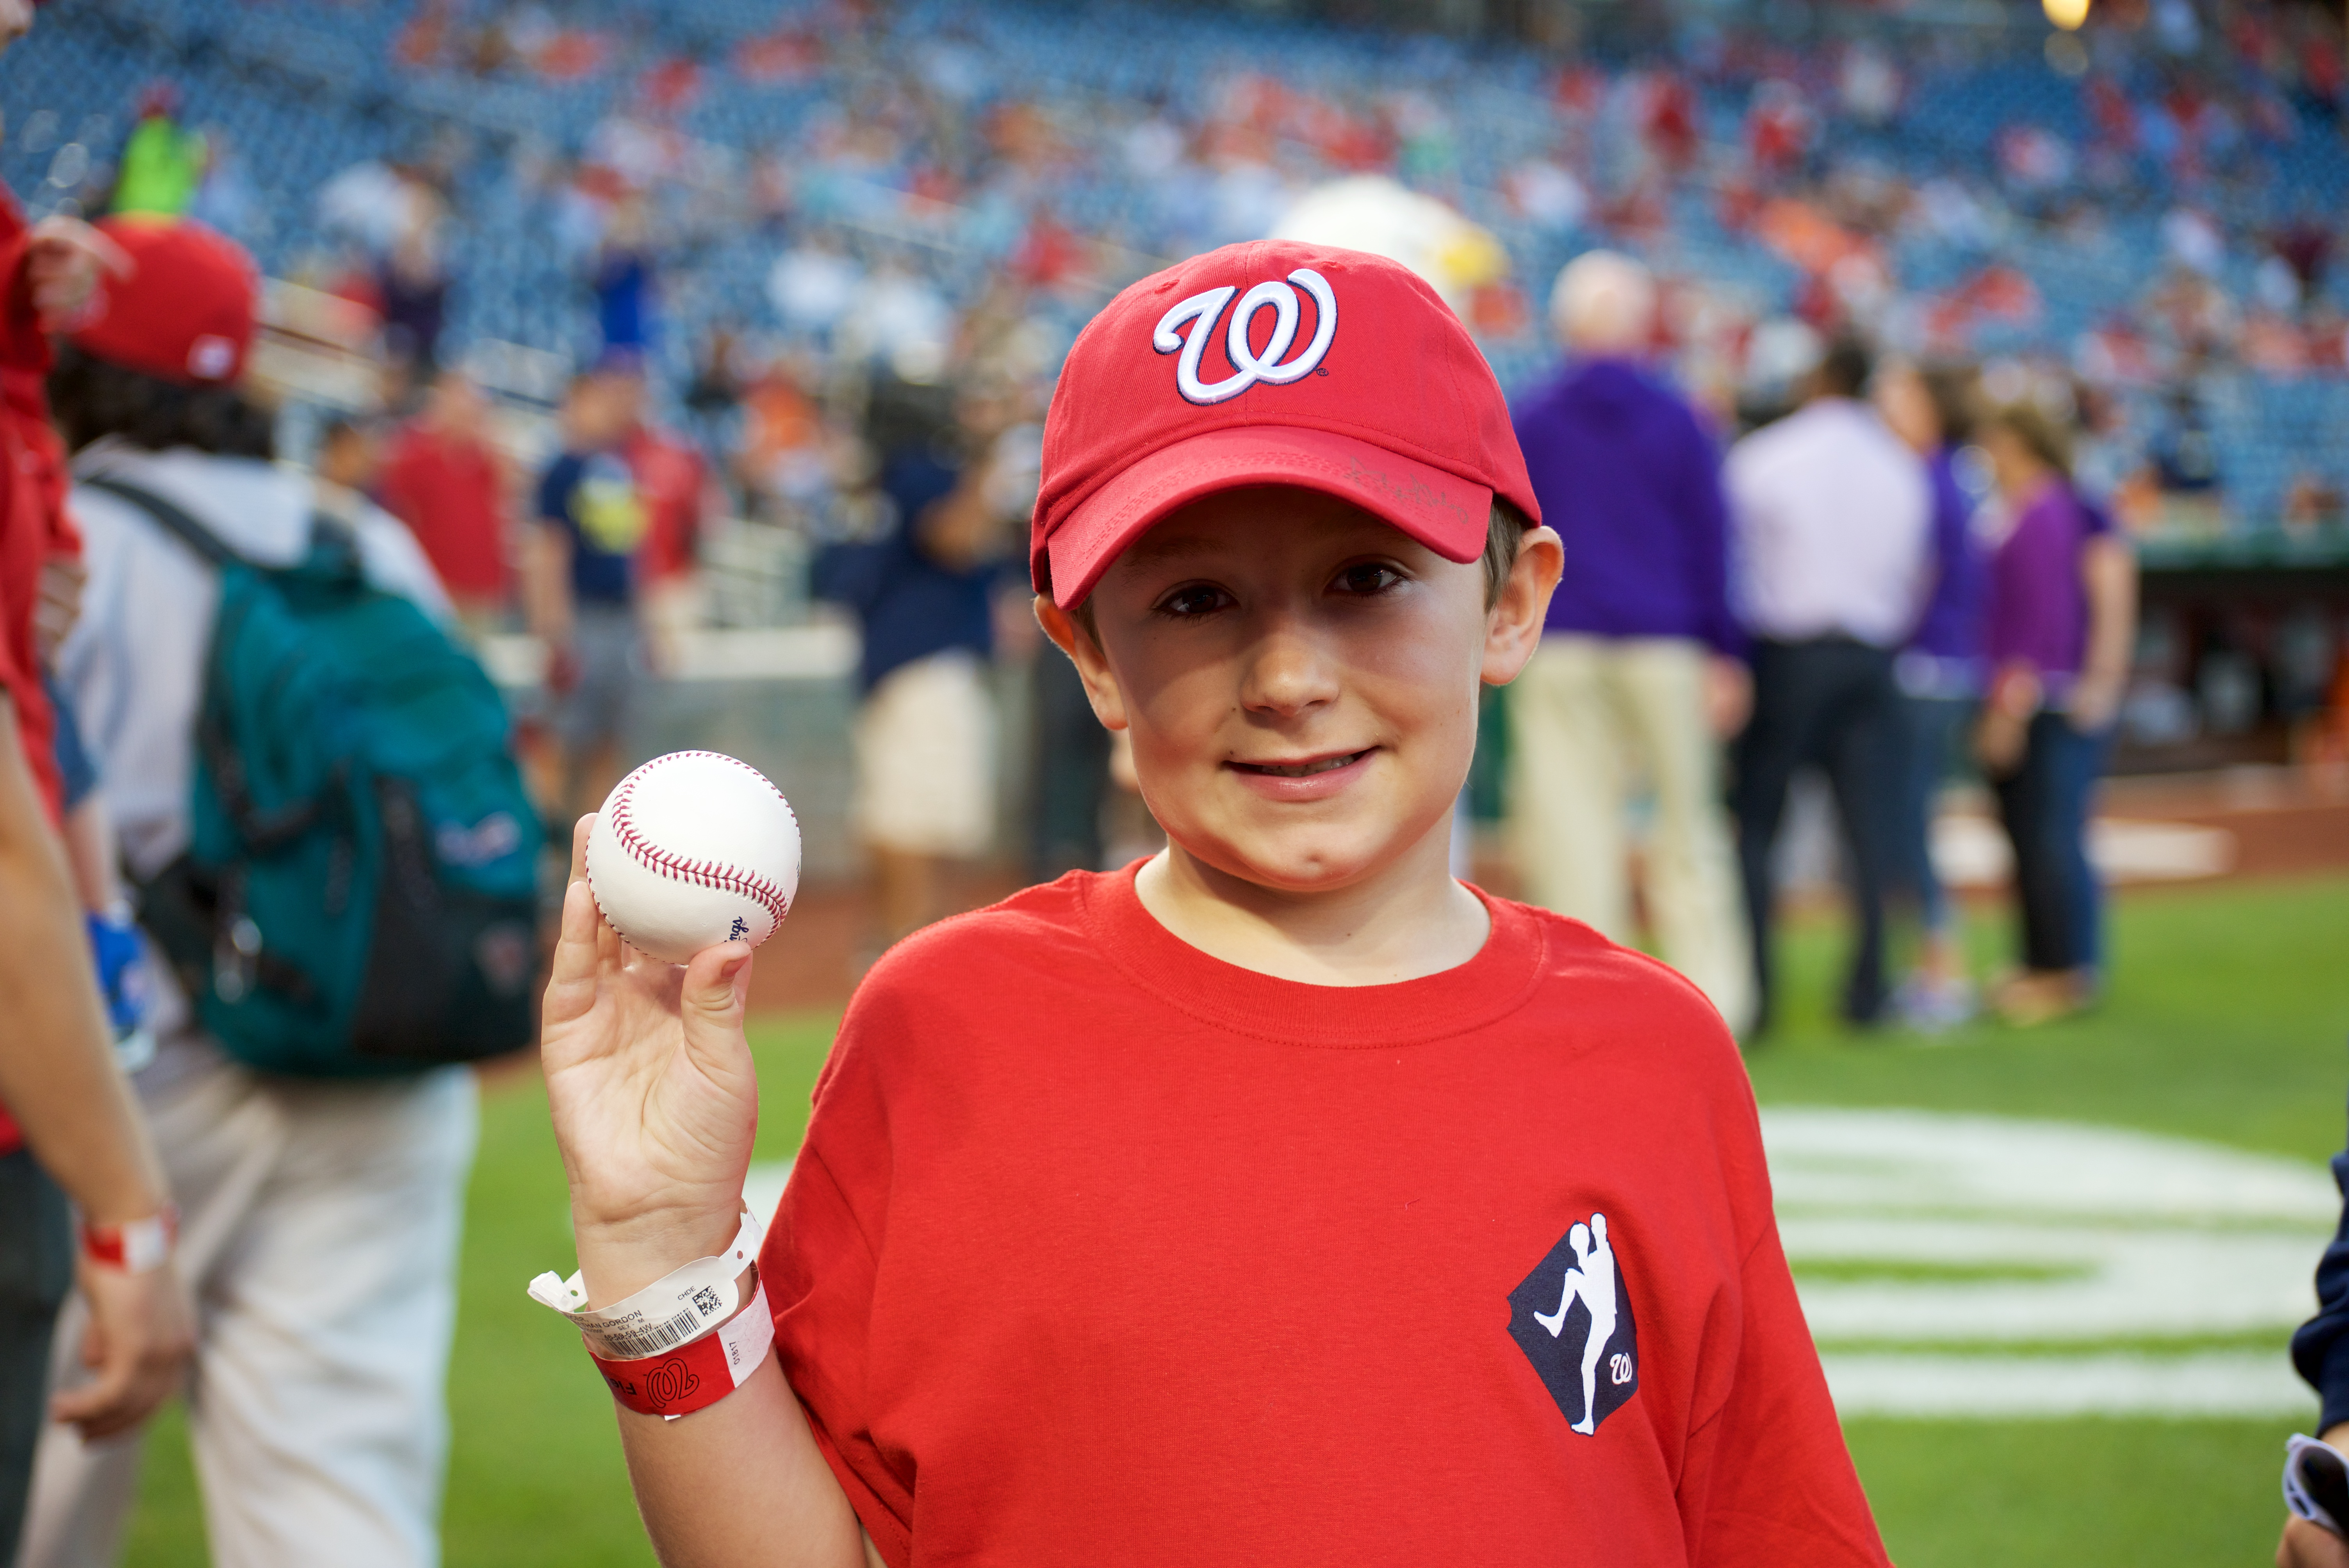 Jonathan was invited to throw the first pitch at a Nationals game.